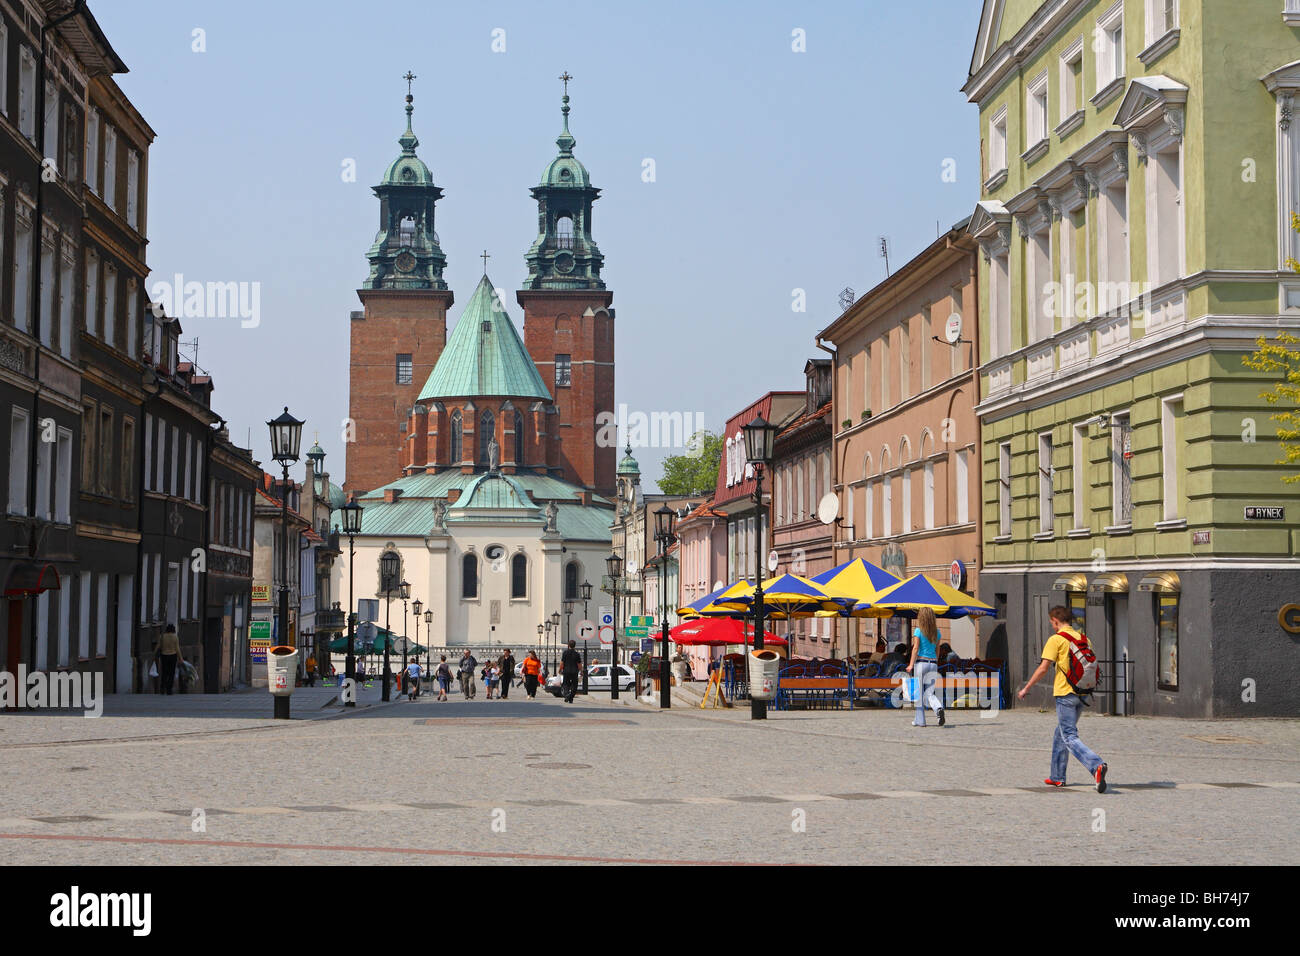 gniezno cathedral gniezno stockfotos gniezno cathedral gniezno bilder seite 2 alamy. Black Bedroom Furniture Sets. Home Design Ideas